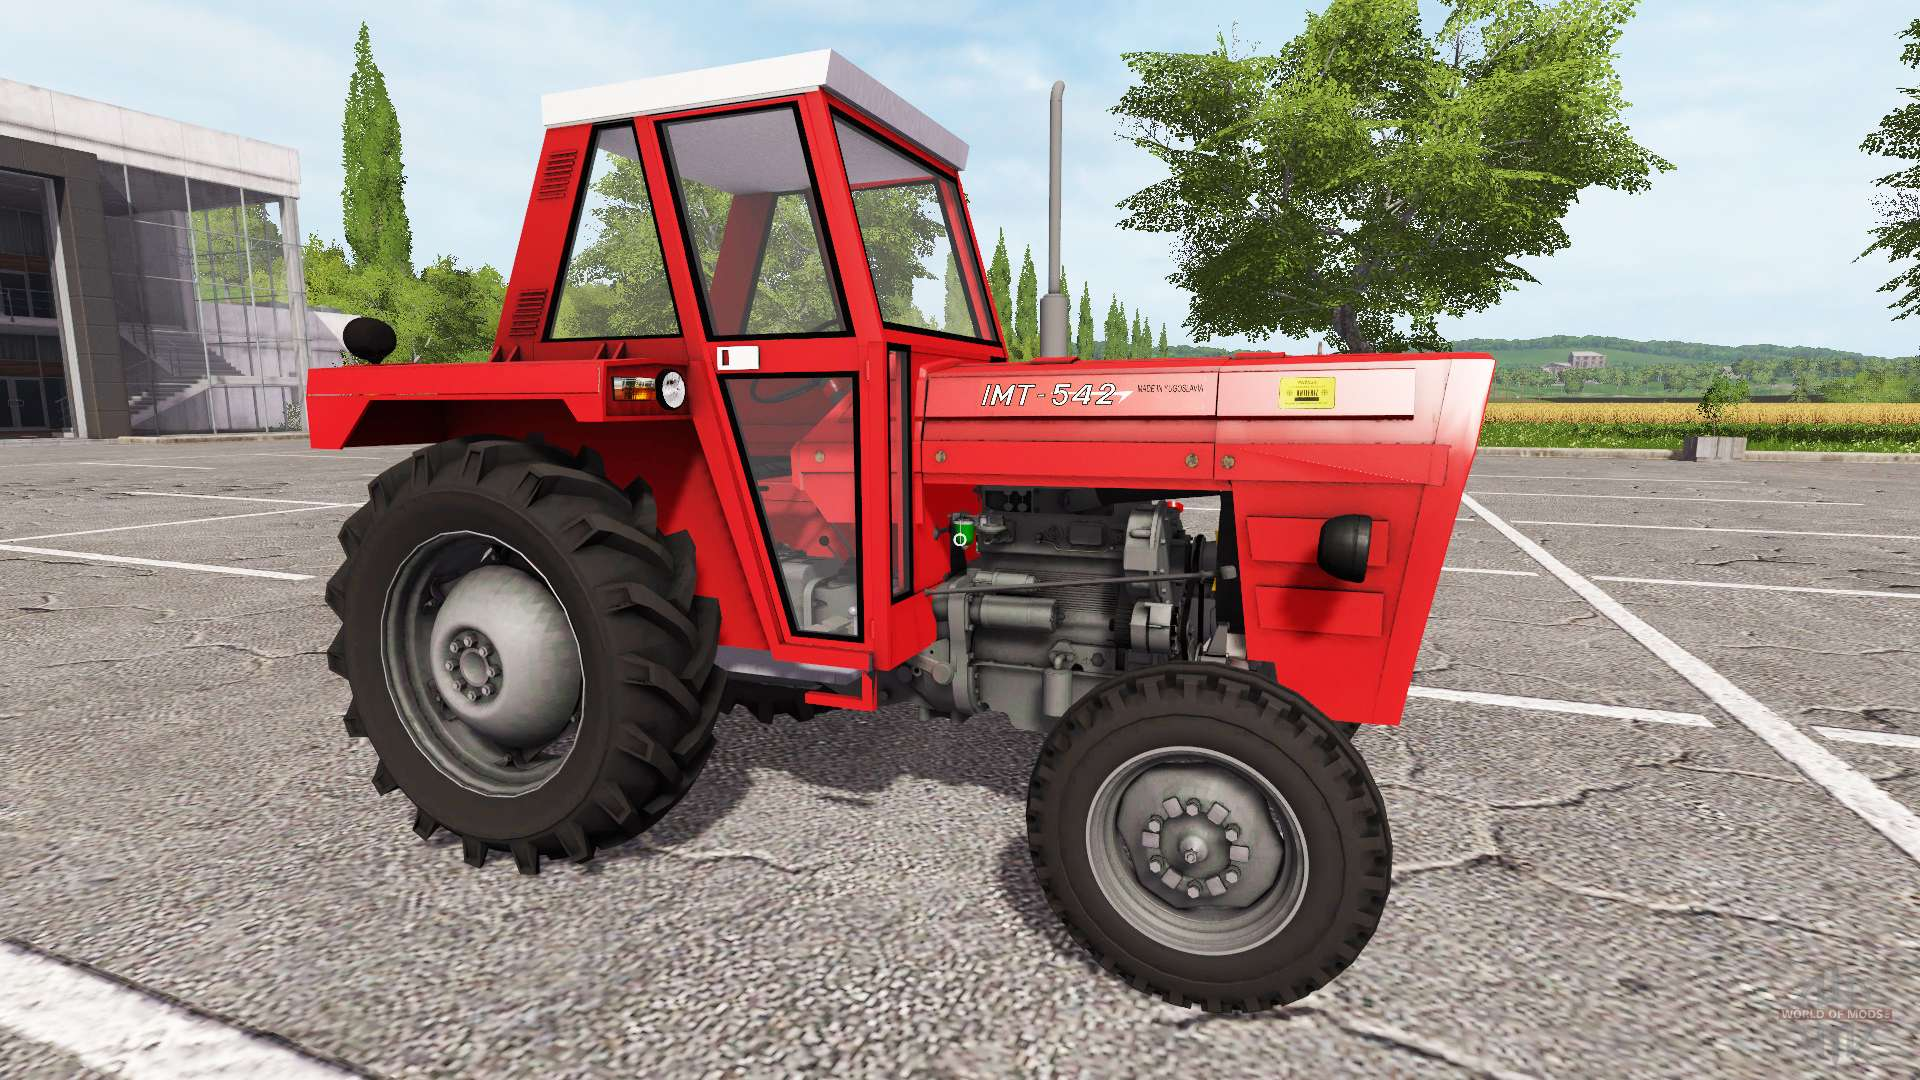 imt 542 deluxe v1 1 for farming simulator 2017 rh worldofmods com IMT 539 Deluxe Tractor Yugoslavia Tractor IMT 1970 559